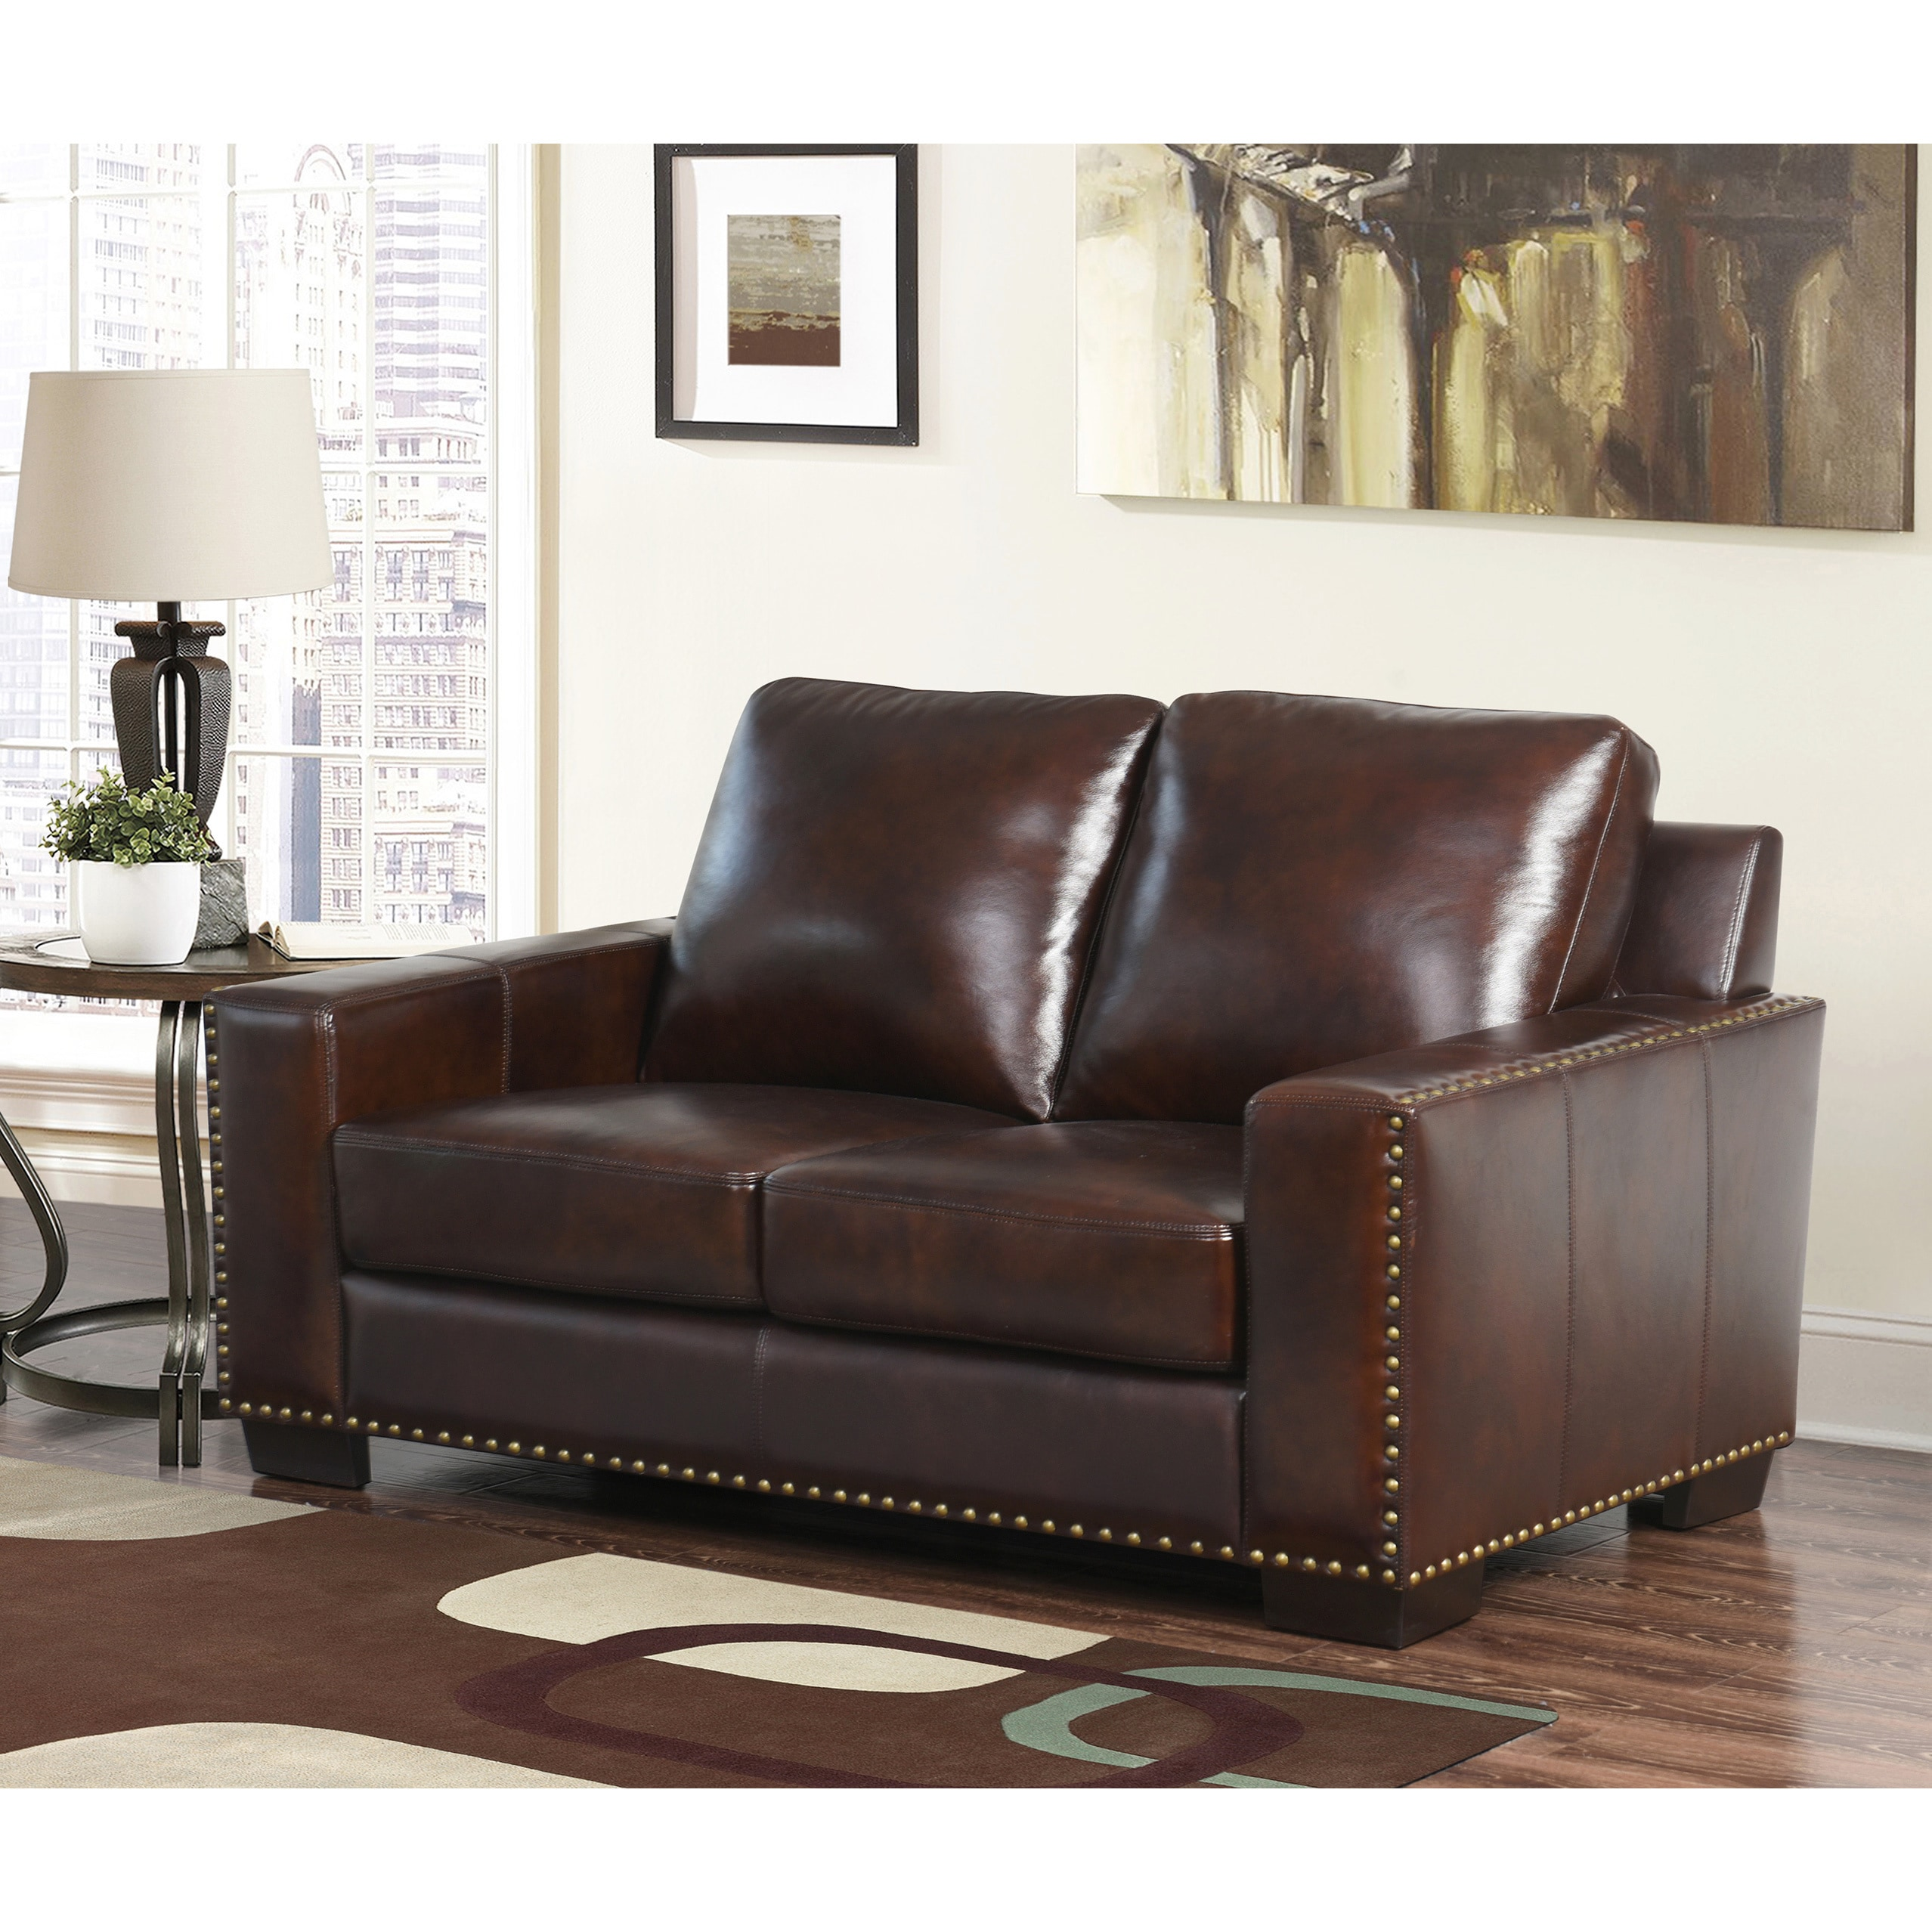 stg in gabe loveseat leather bonded century mid sofamania camel cam com products